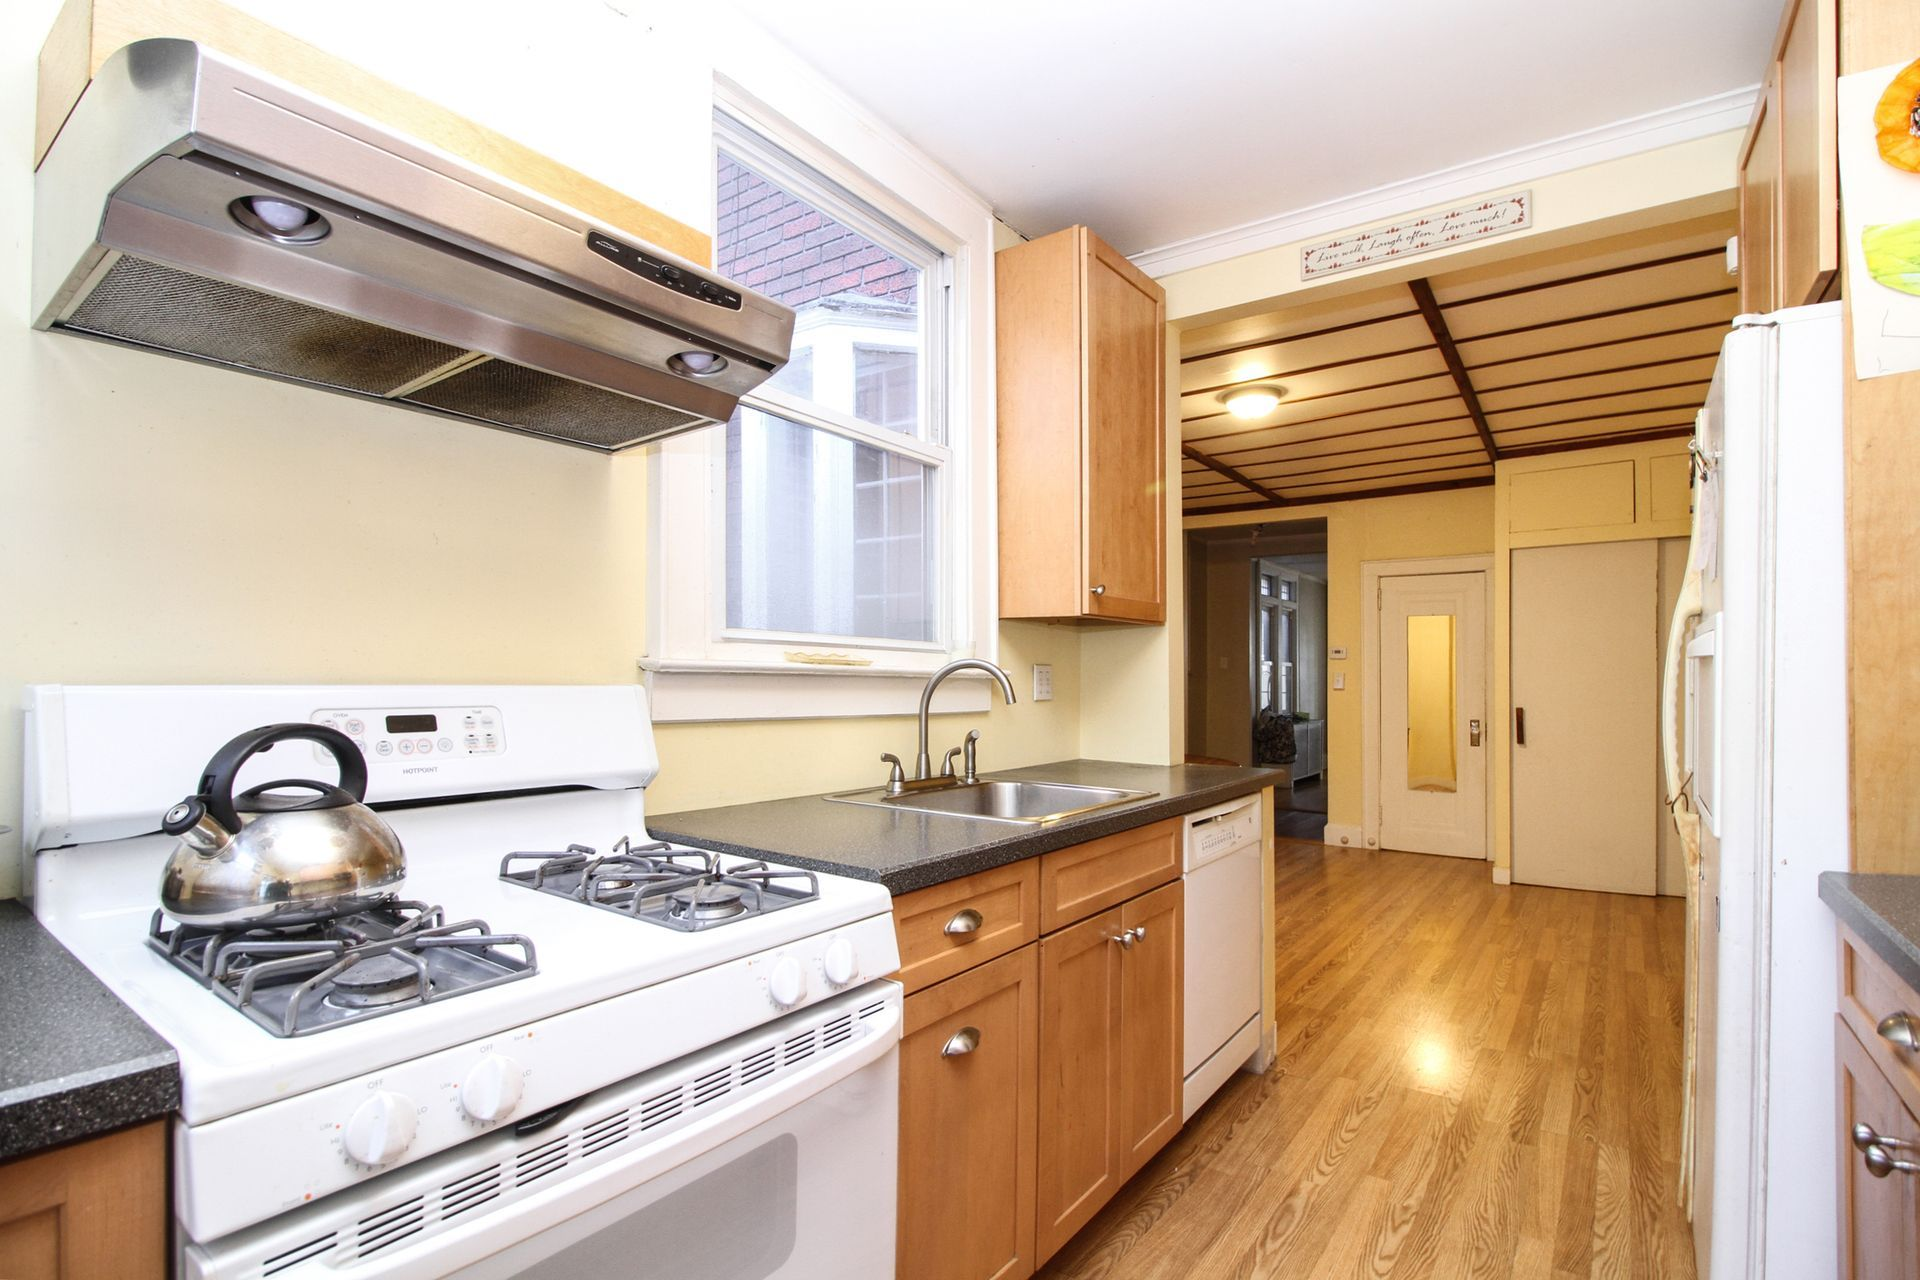 Ideas For A Kitchen With So Much Space?   Home, Real ...